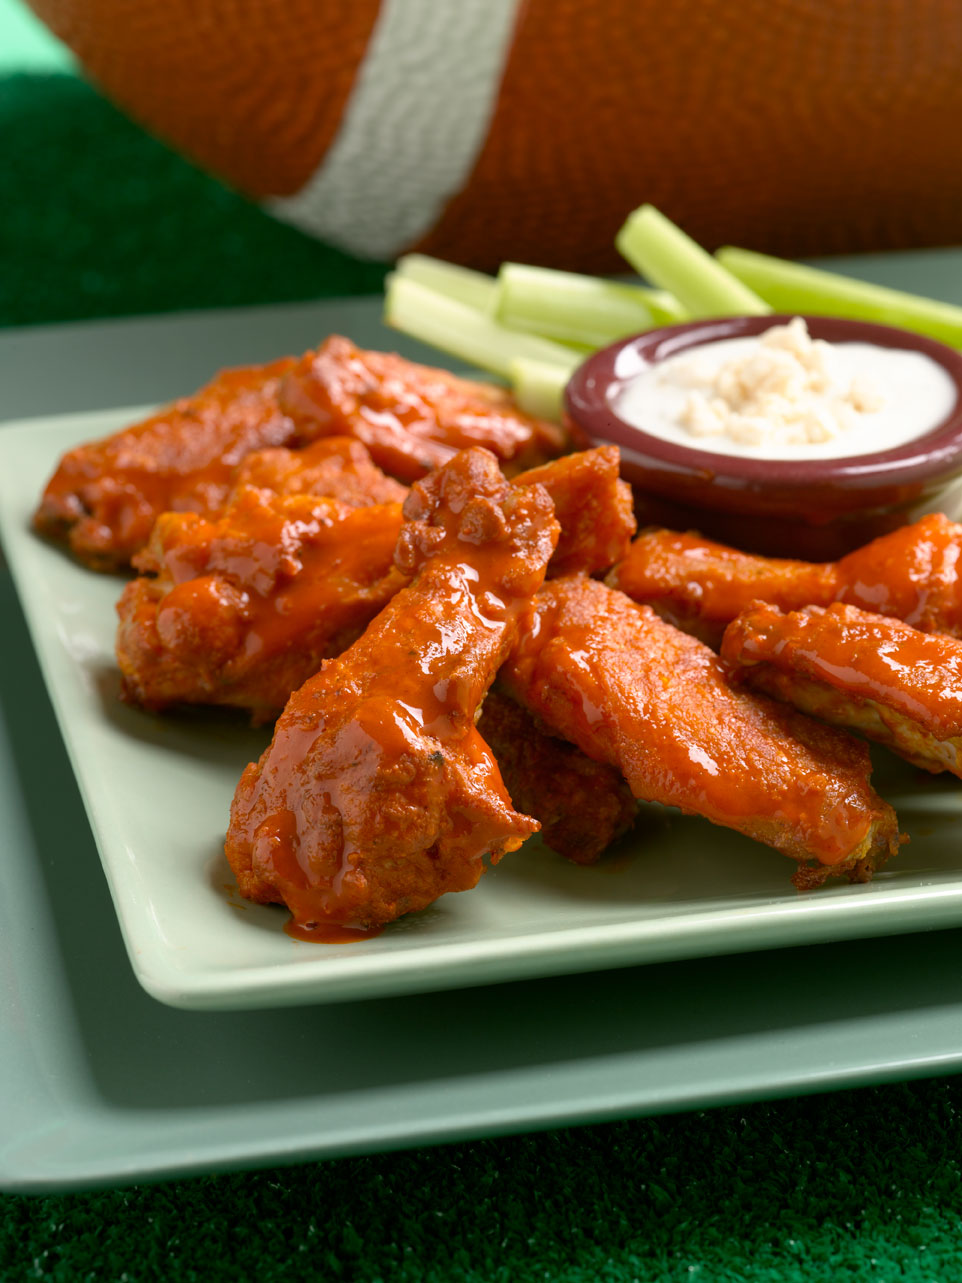 This is a simple recipe for a traditional favorite. These chicken wings are sure to please. Adjust the hot sauce if you want these Buffalo Wings hotter or not.